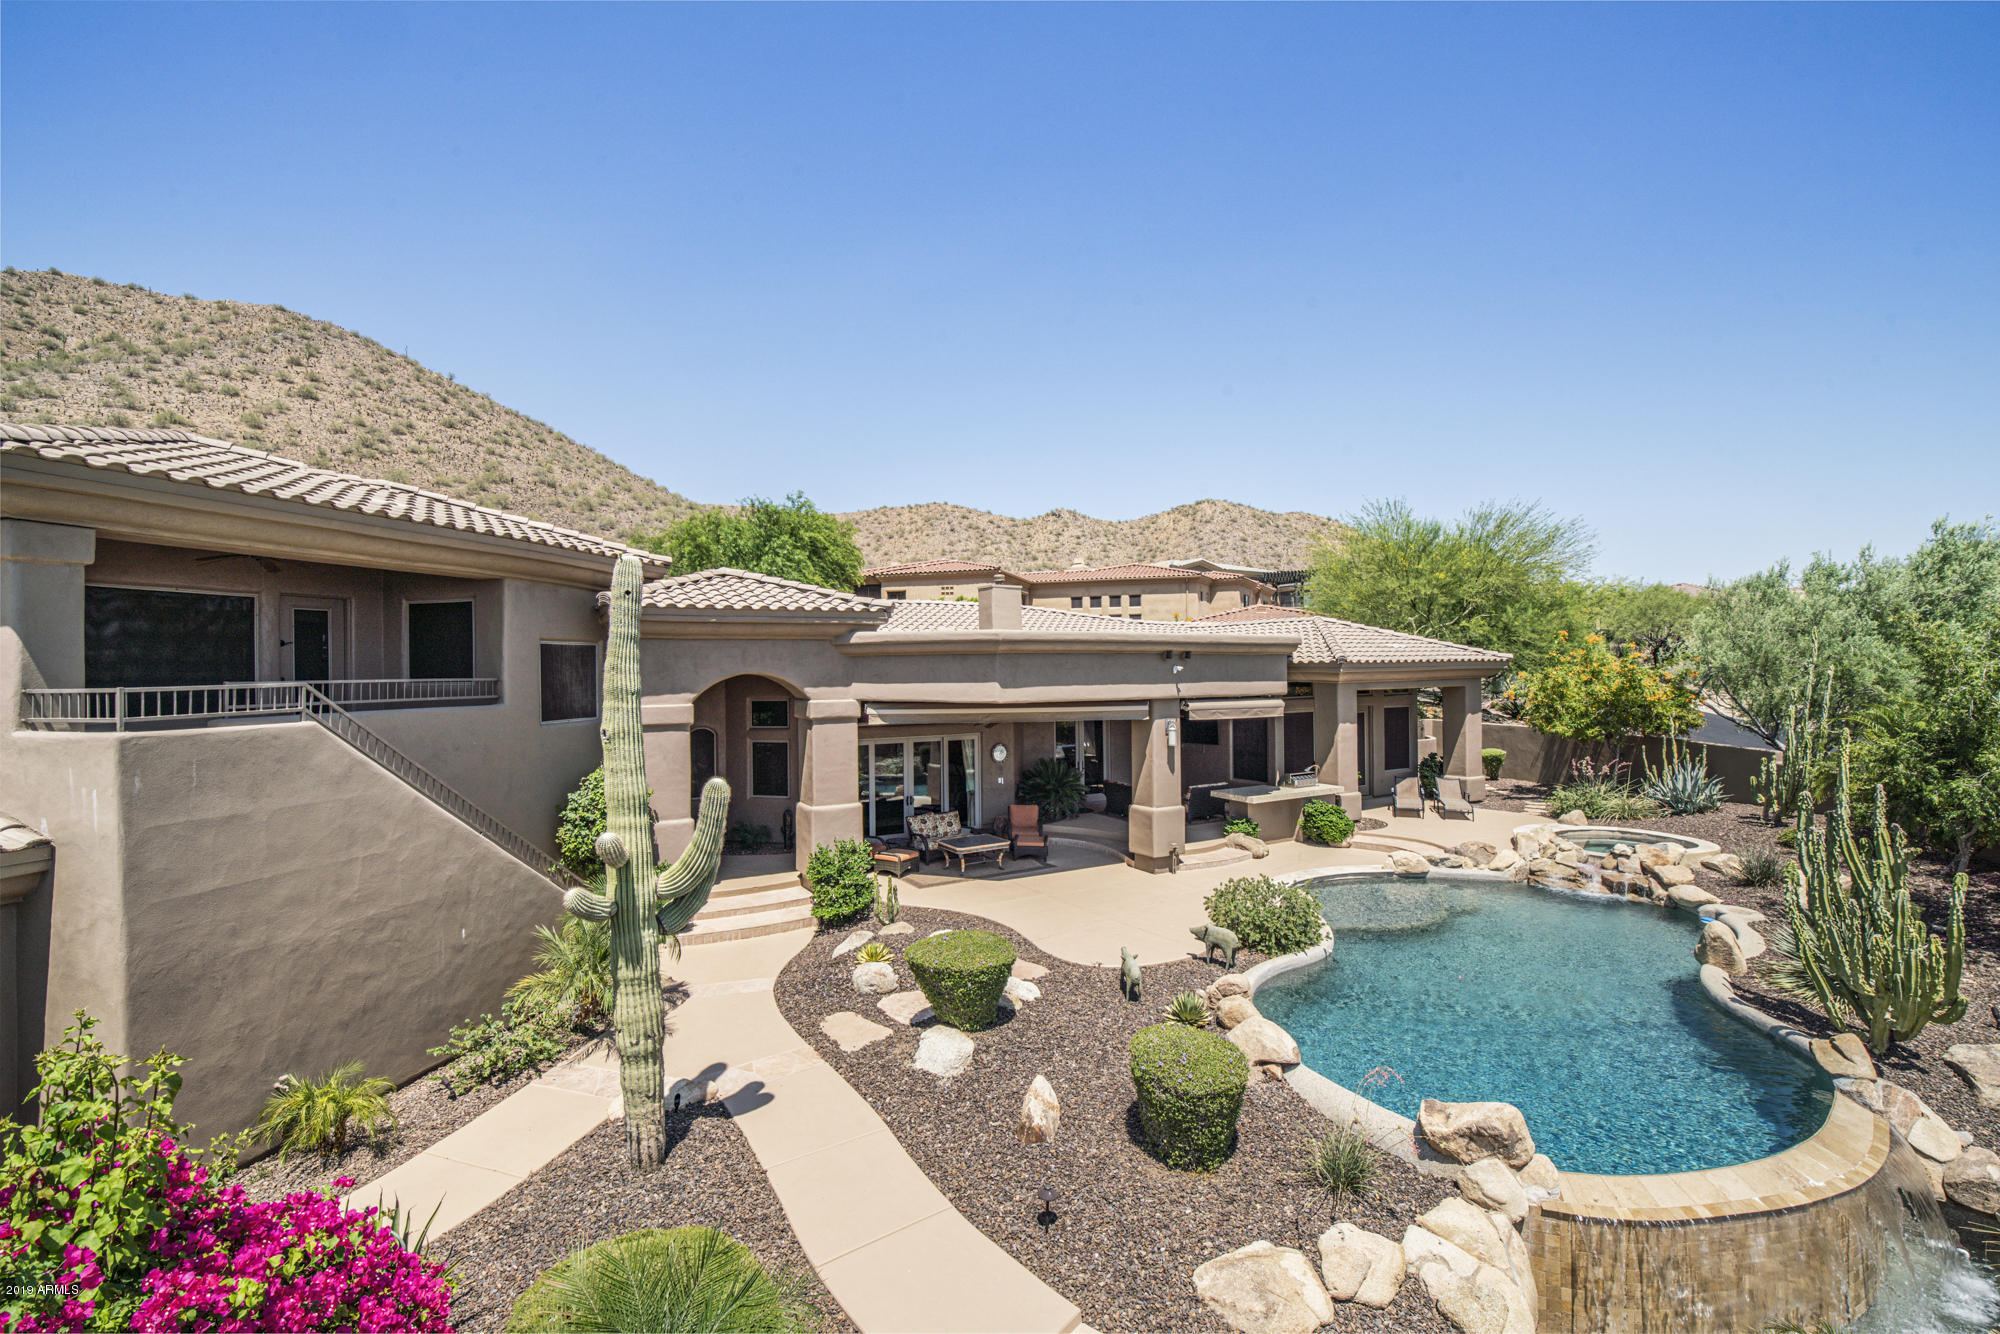 MLS 5946840 11904 E DESERT TRAIL Road, Scottsdale, AZ 85259 Scottsdale AZ Private Pool